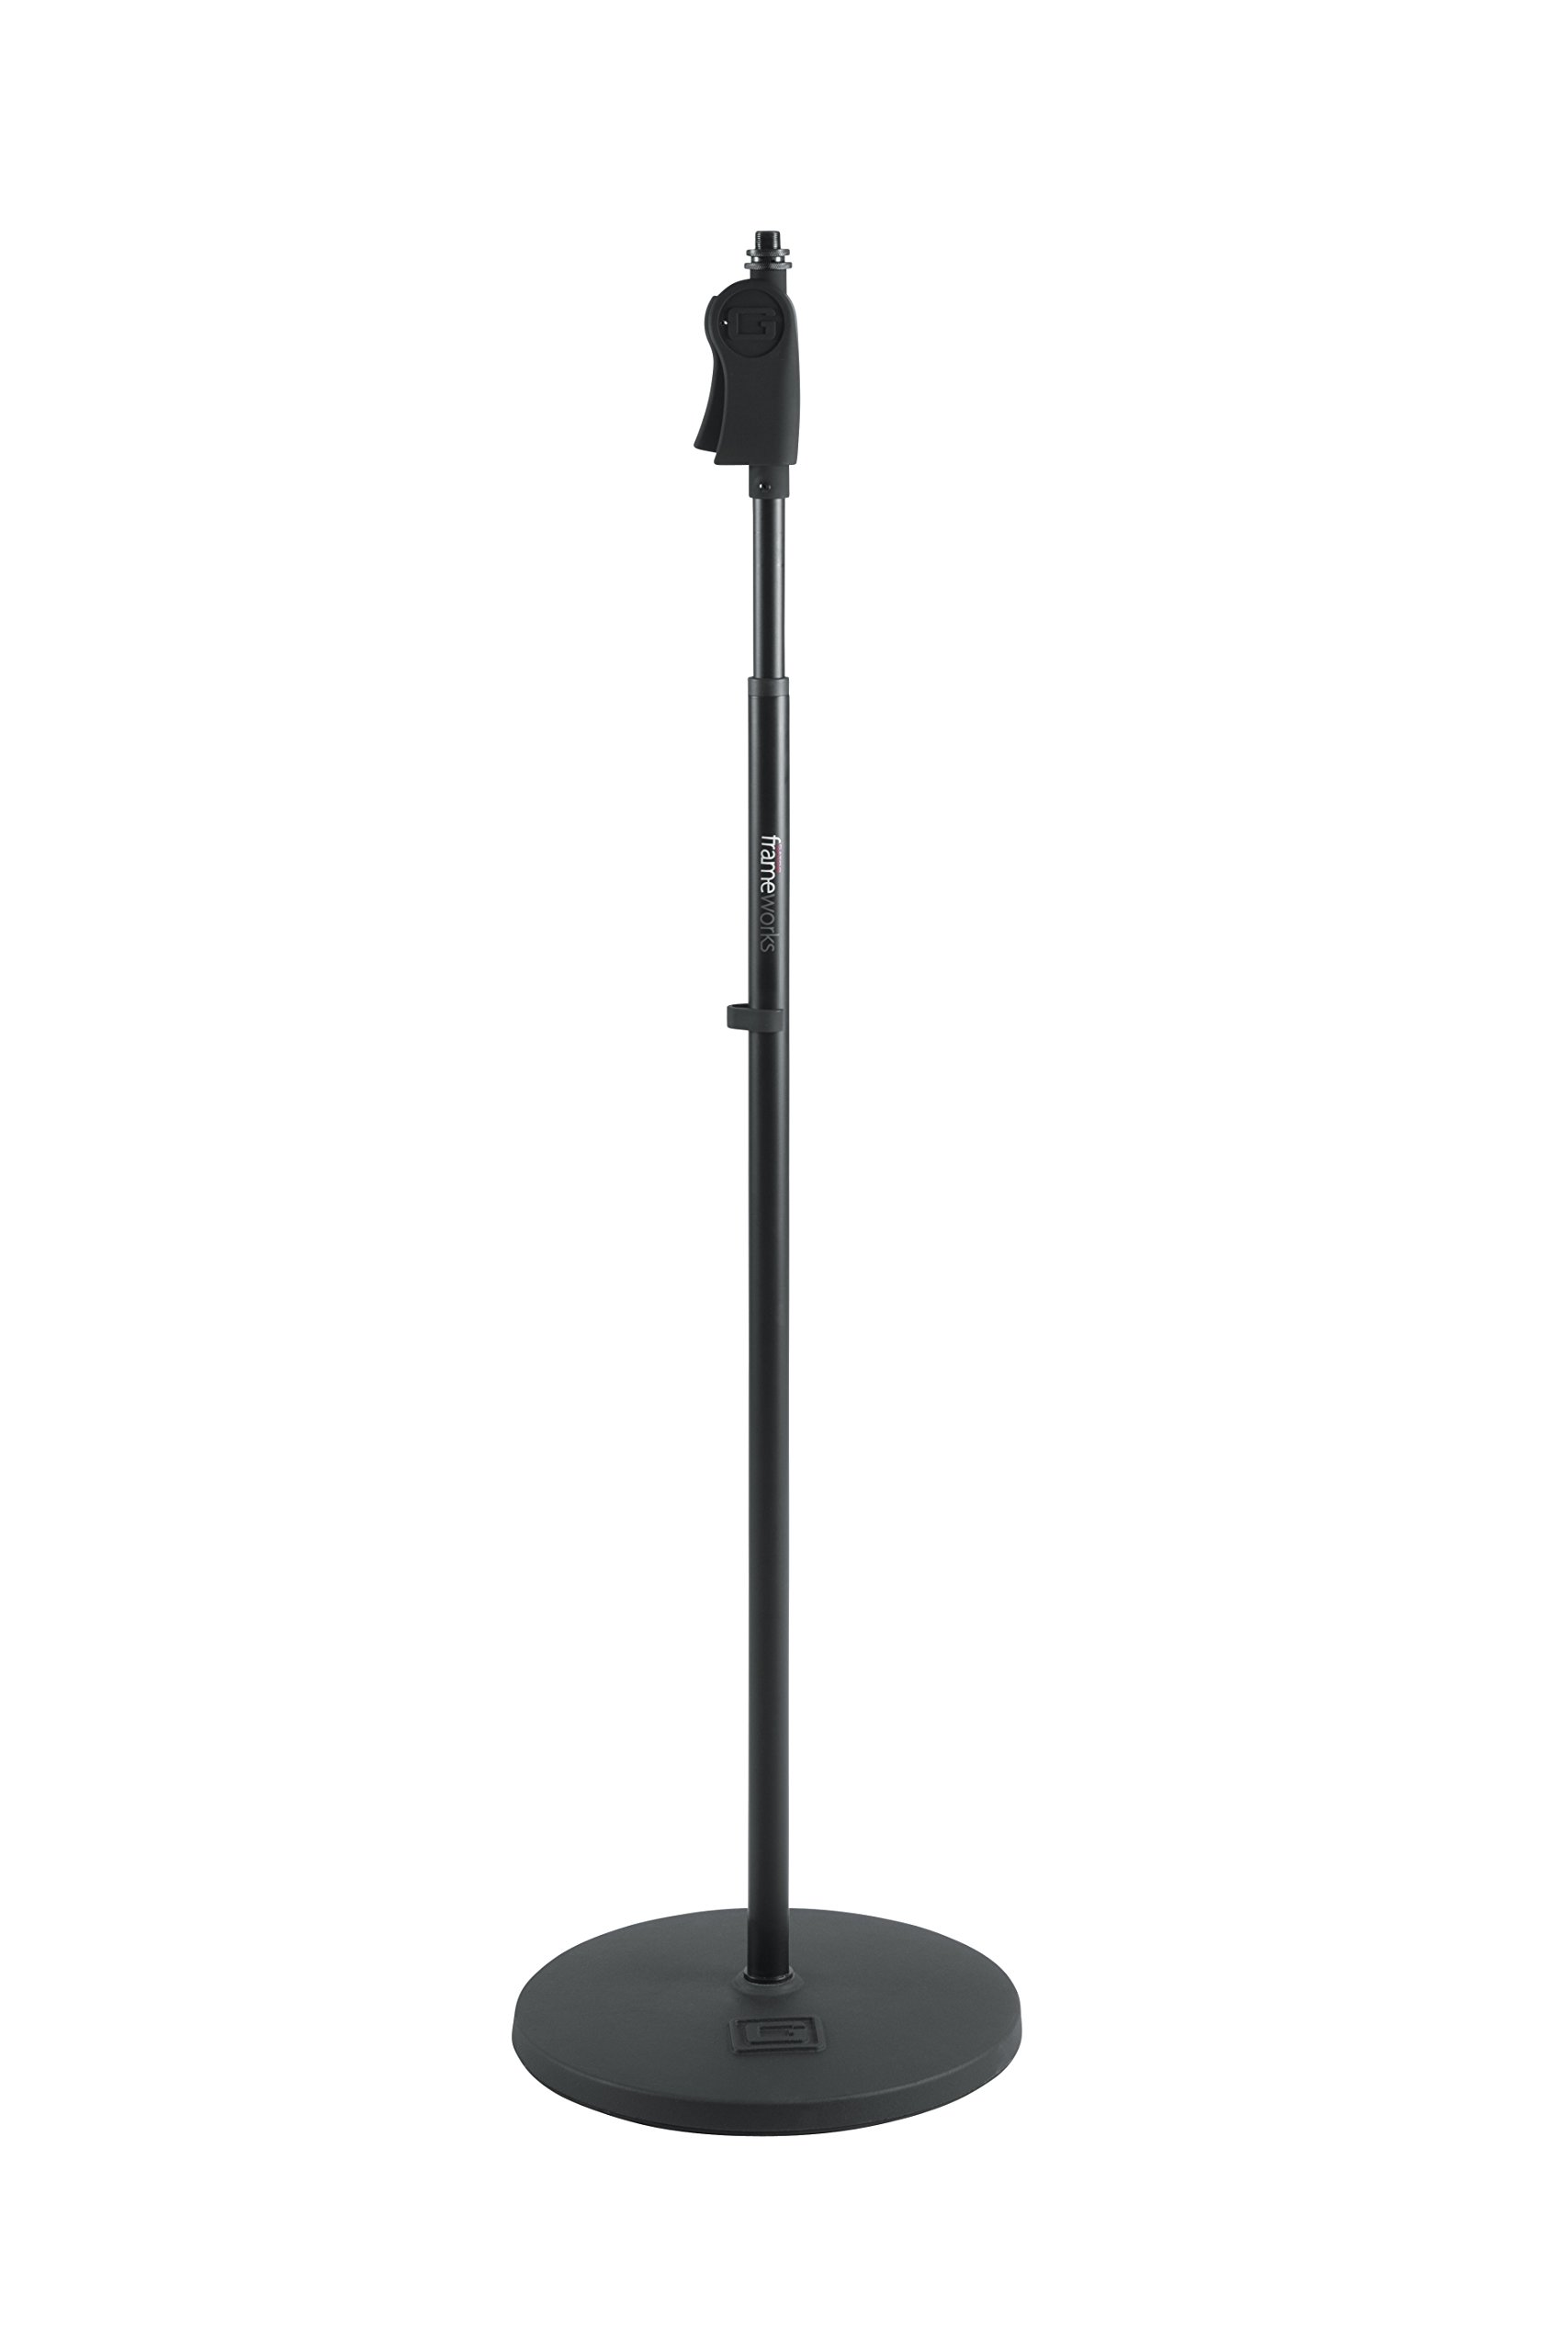 Gator Frameworks Microphone Stand with 12'' Weighted Base and Deluxe Soft Grip Squeeze Height Adjustment (GFW-MIC-1201)